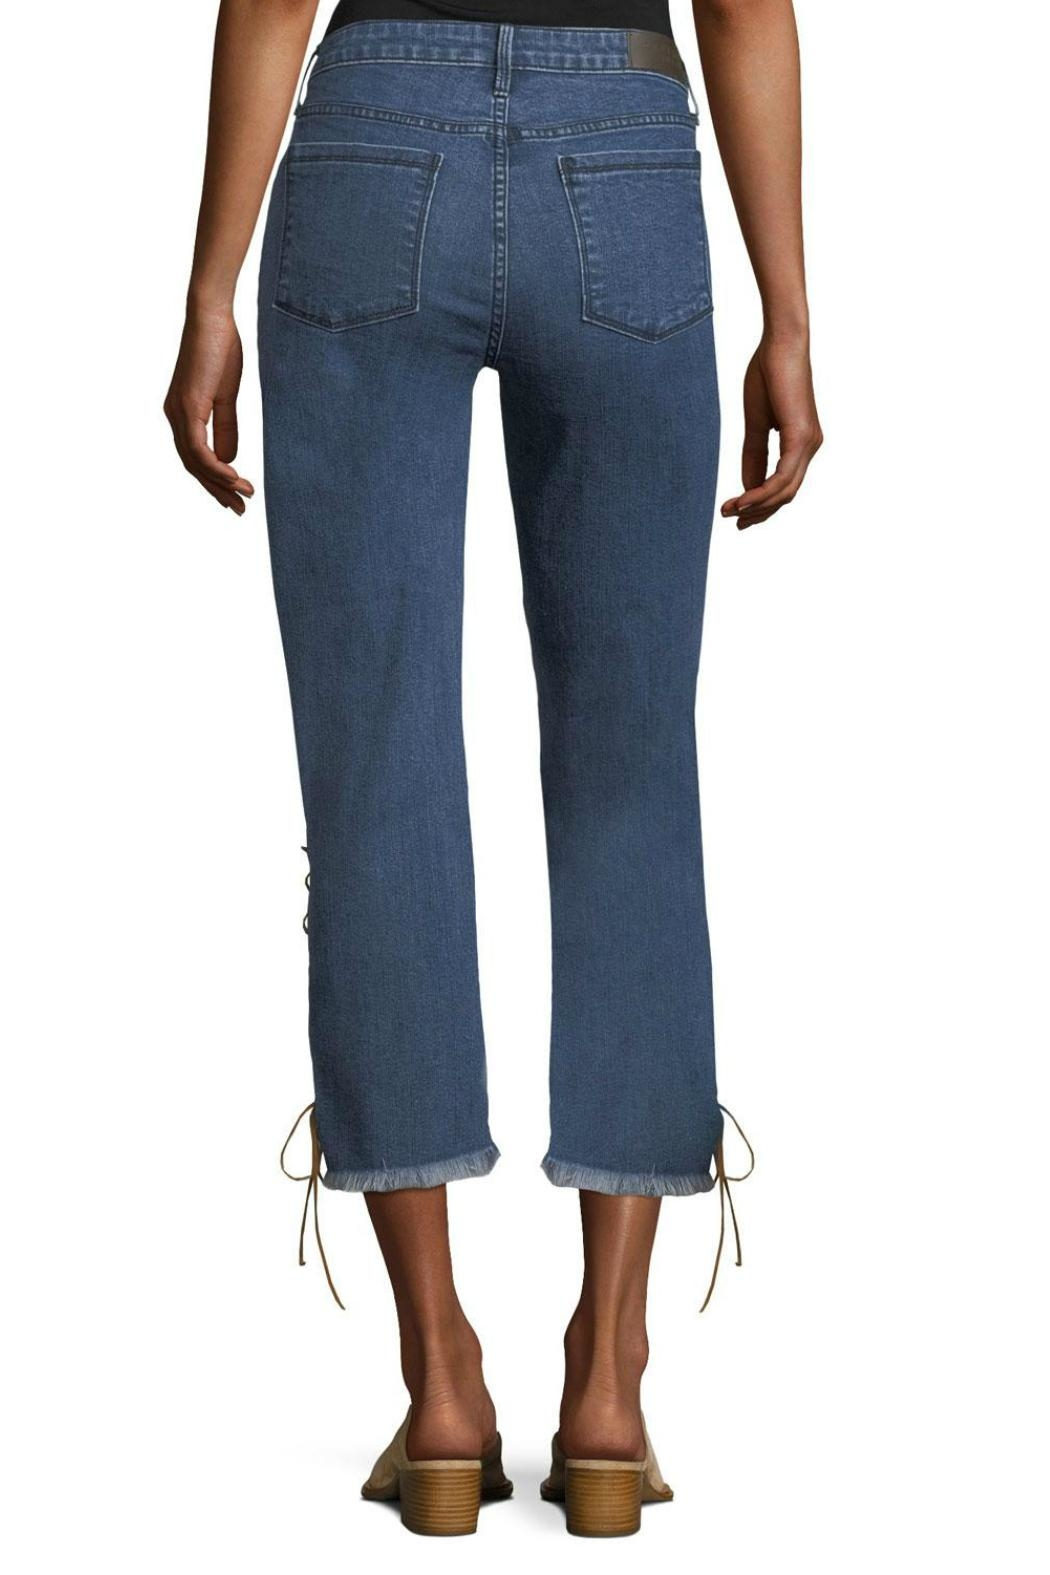 Parker Smith Lace Up Jean - Front Full Image